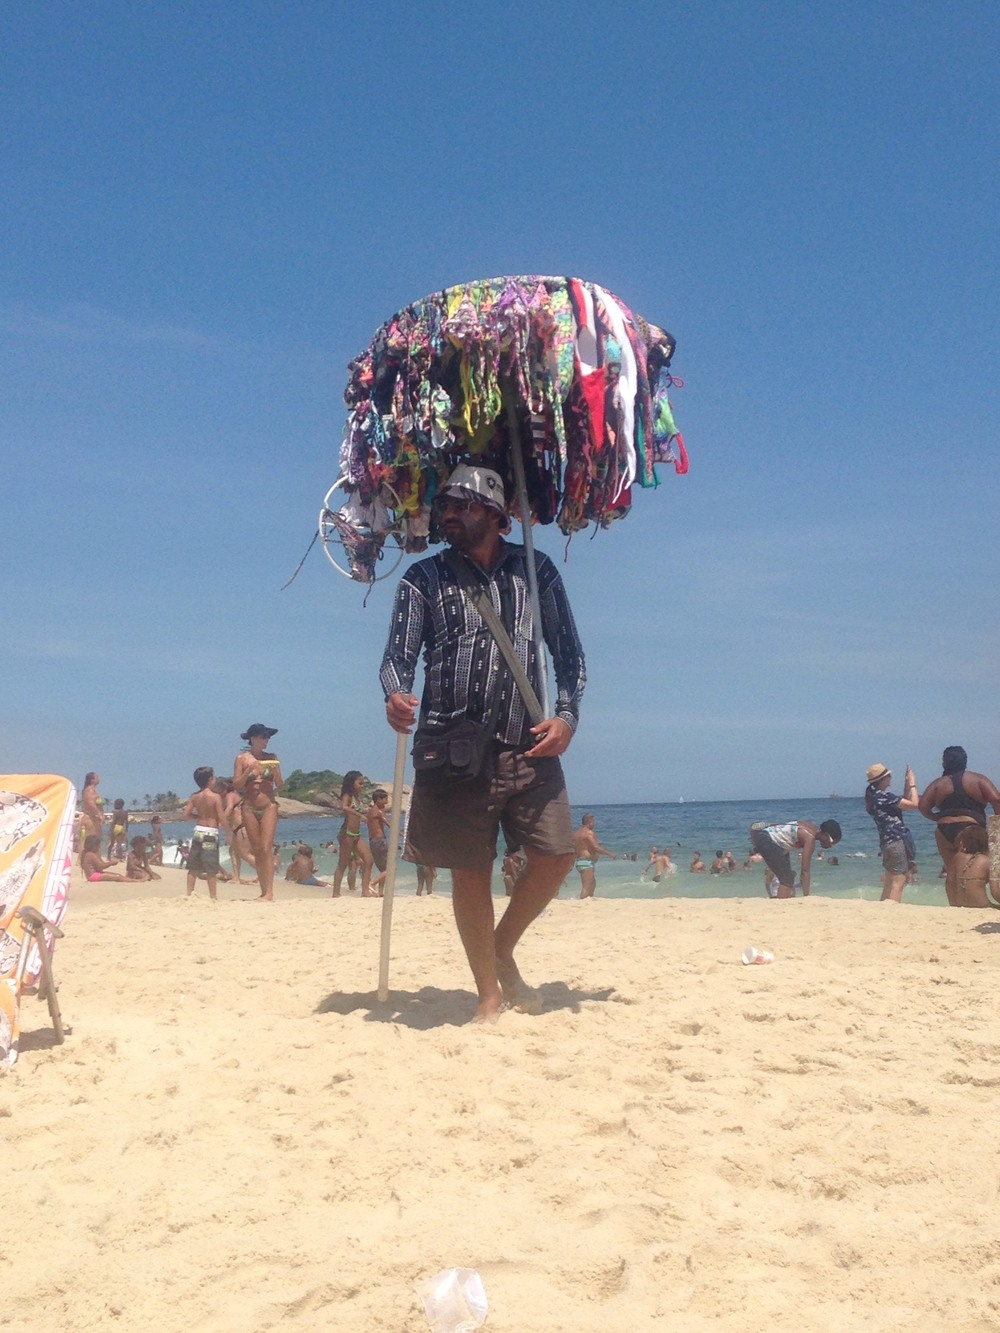 Bikini seller on Copacabana beach, that's an umbrella!